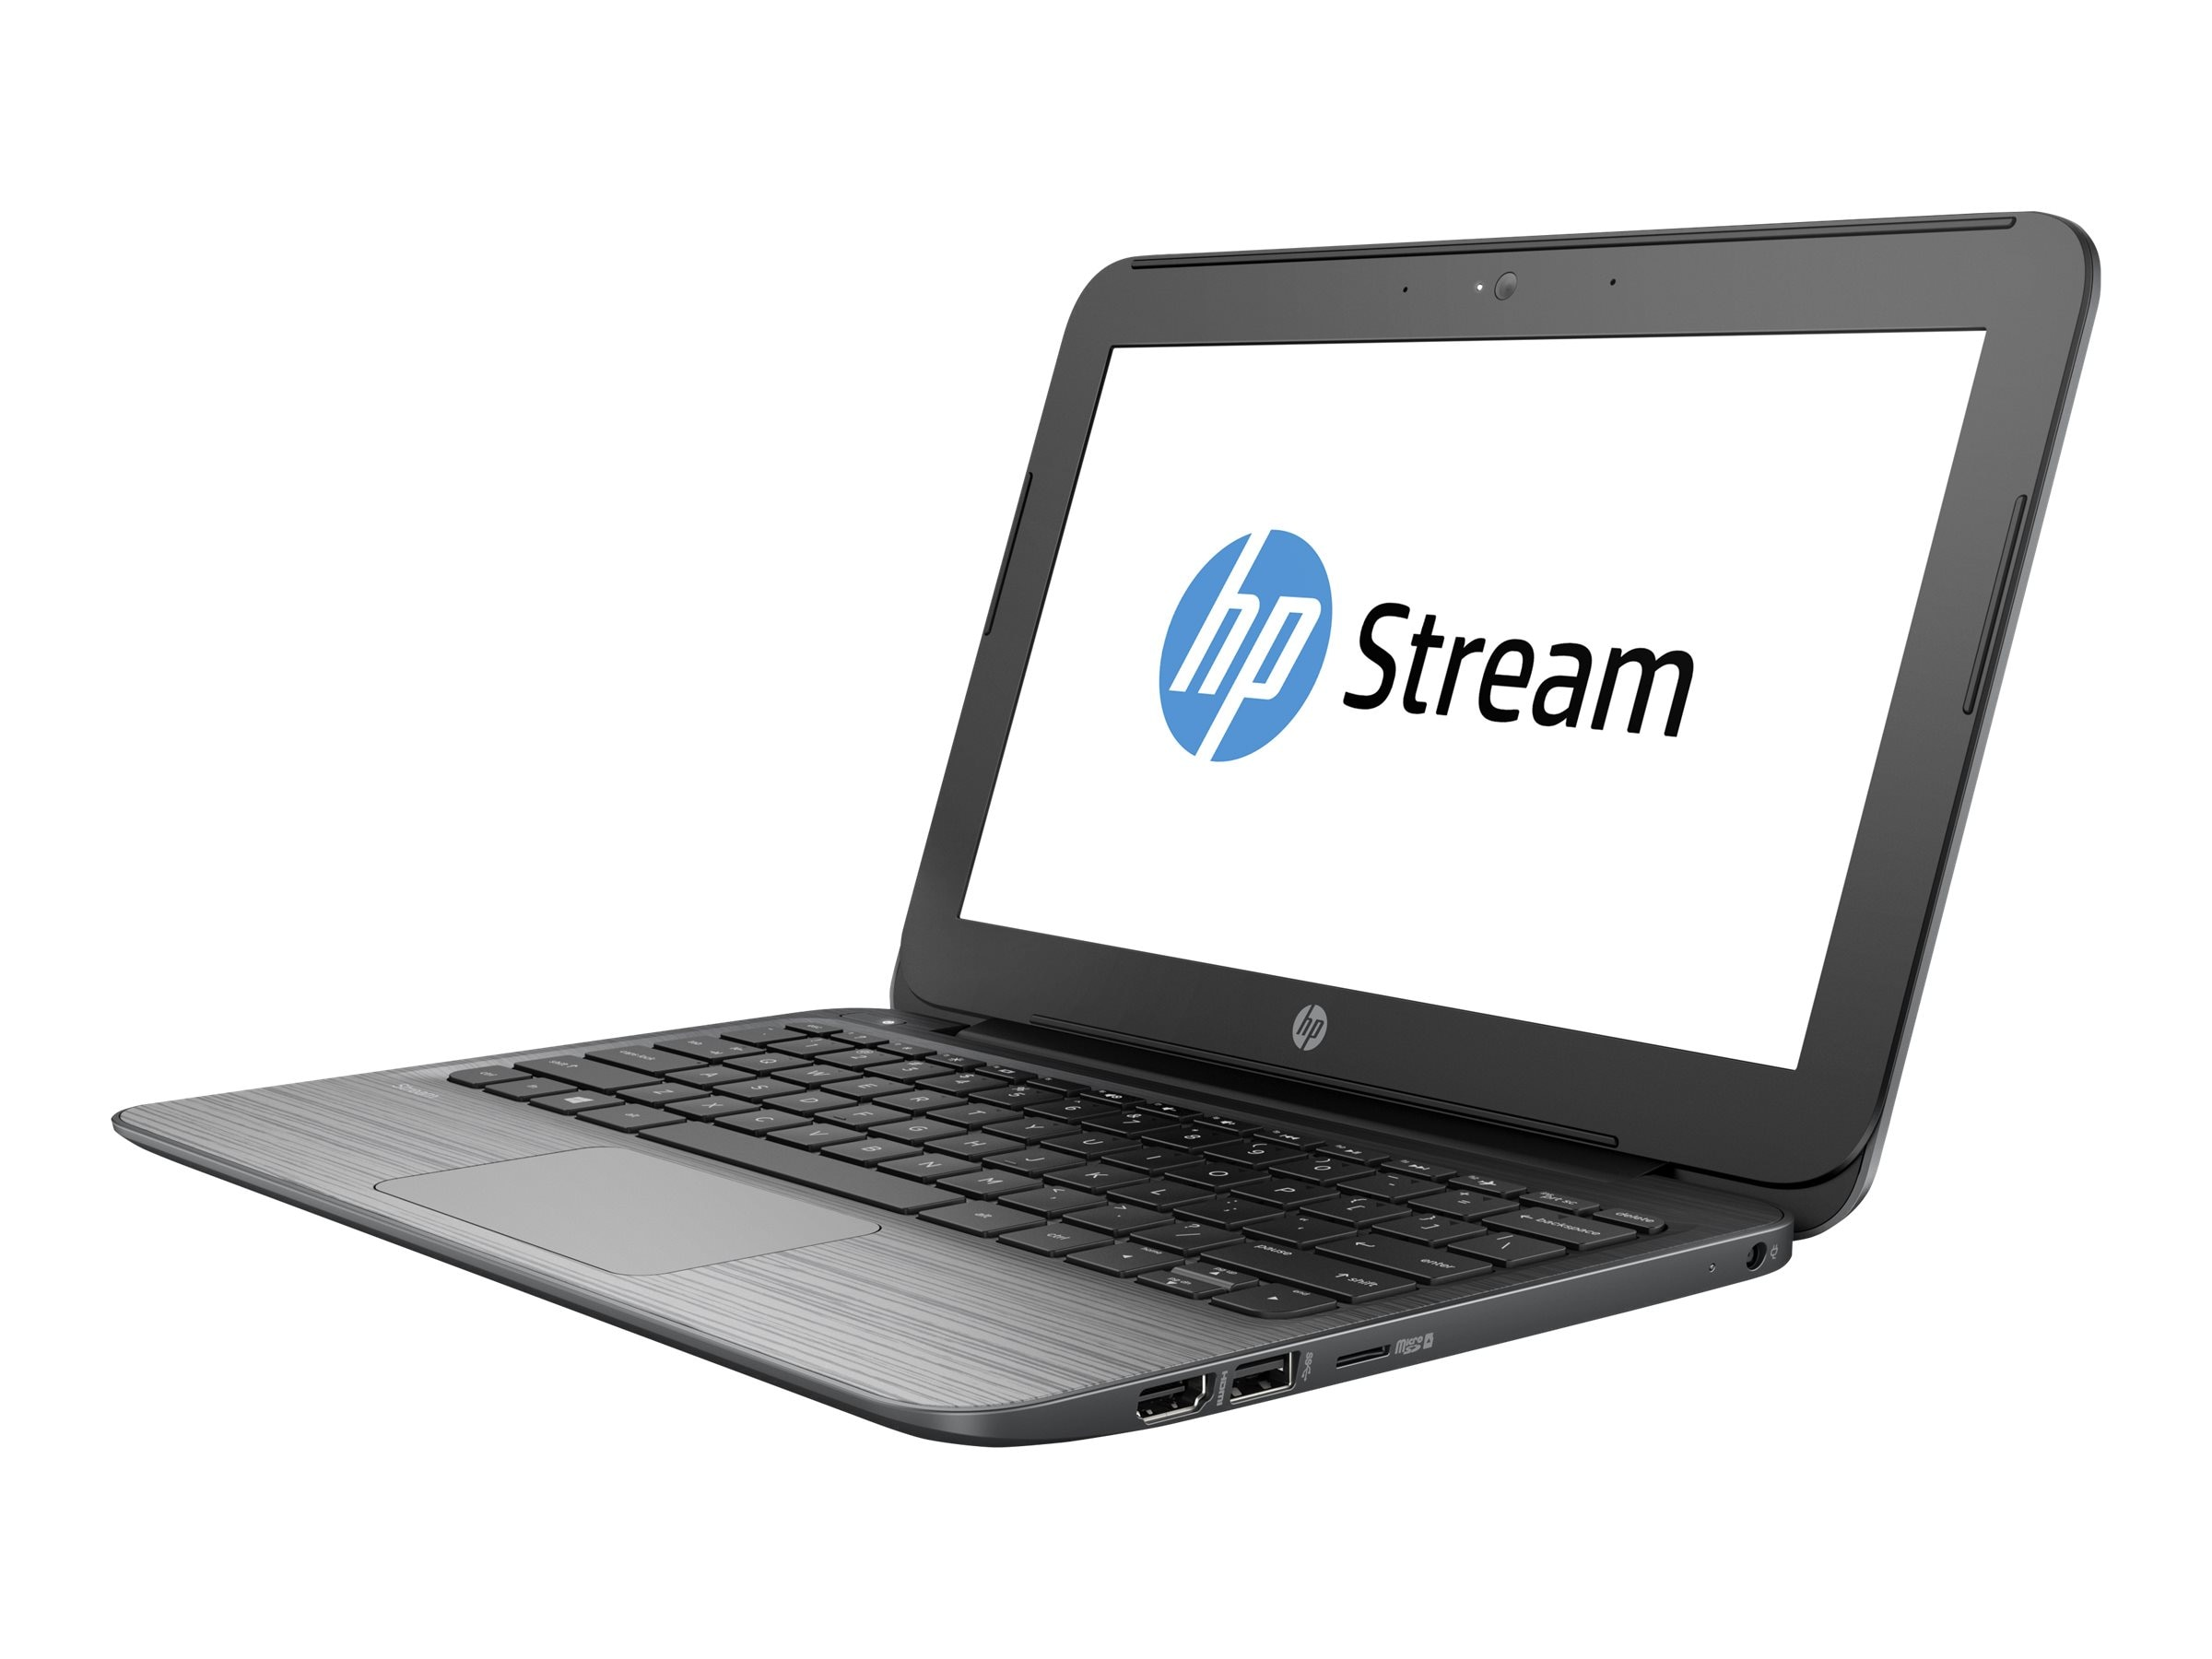 HP Stream 11 Pro G2 1.6GHz Celeron 11.6in display